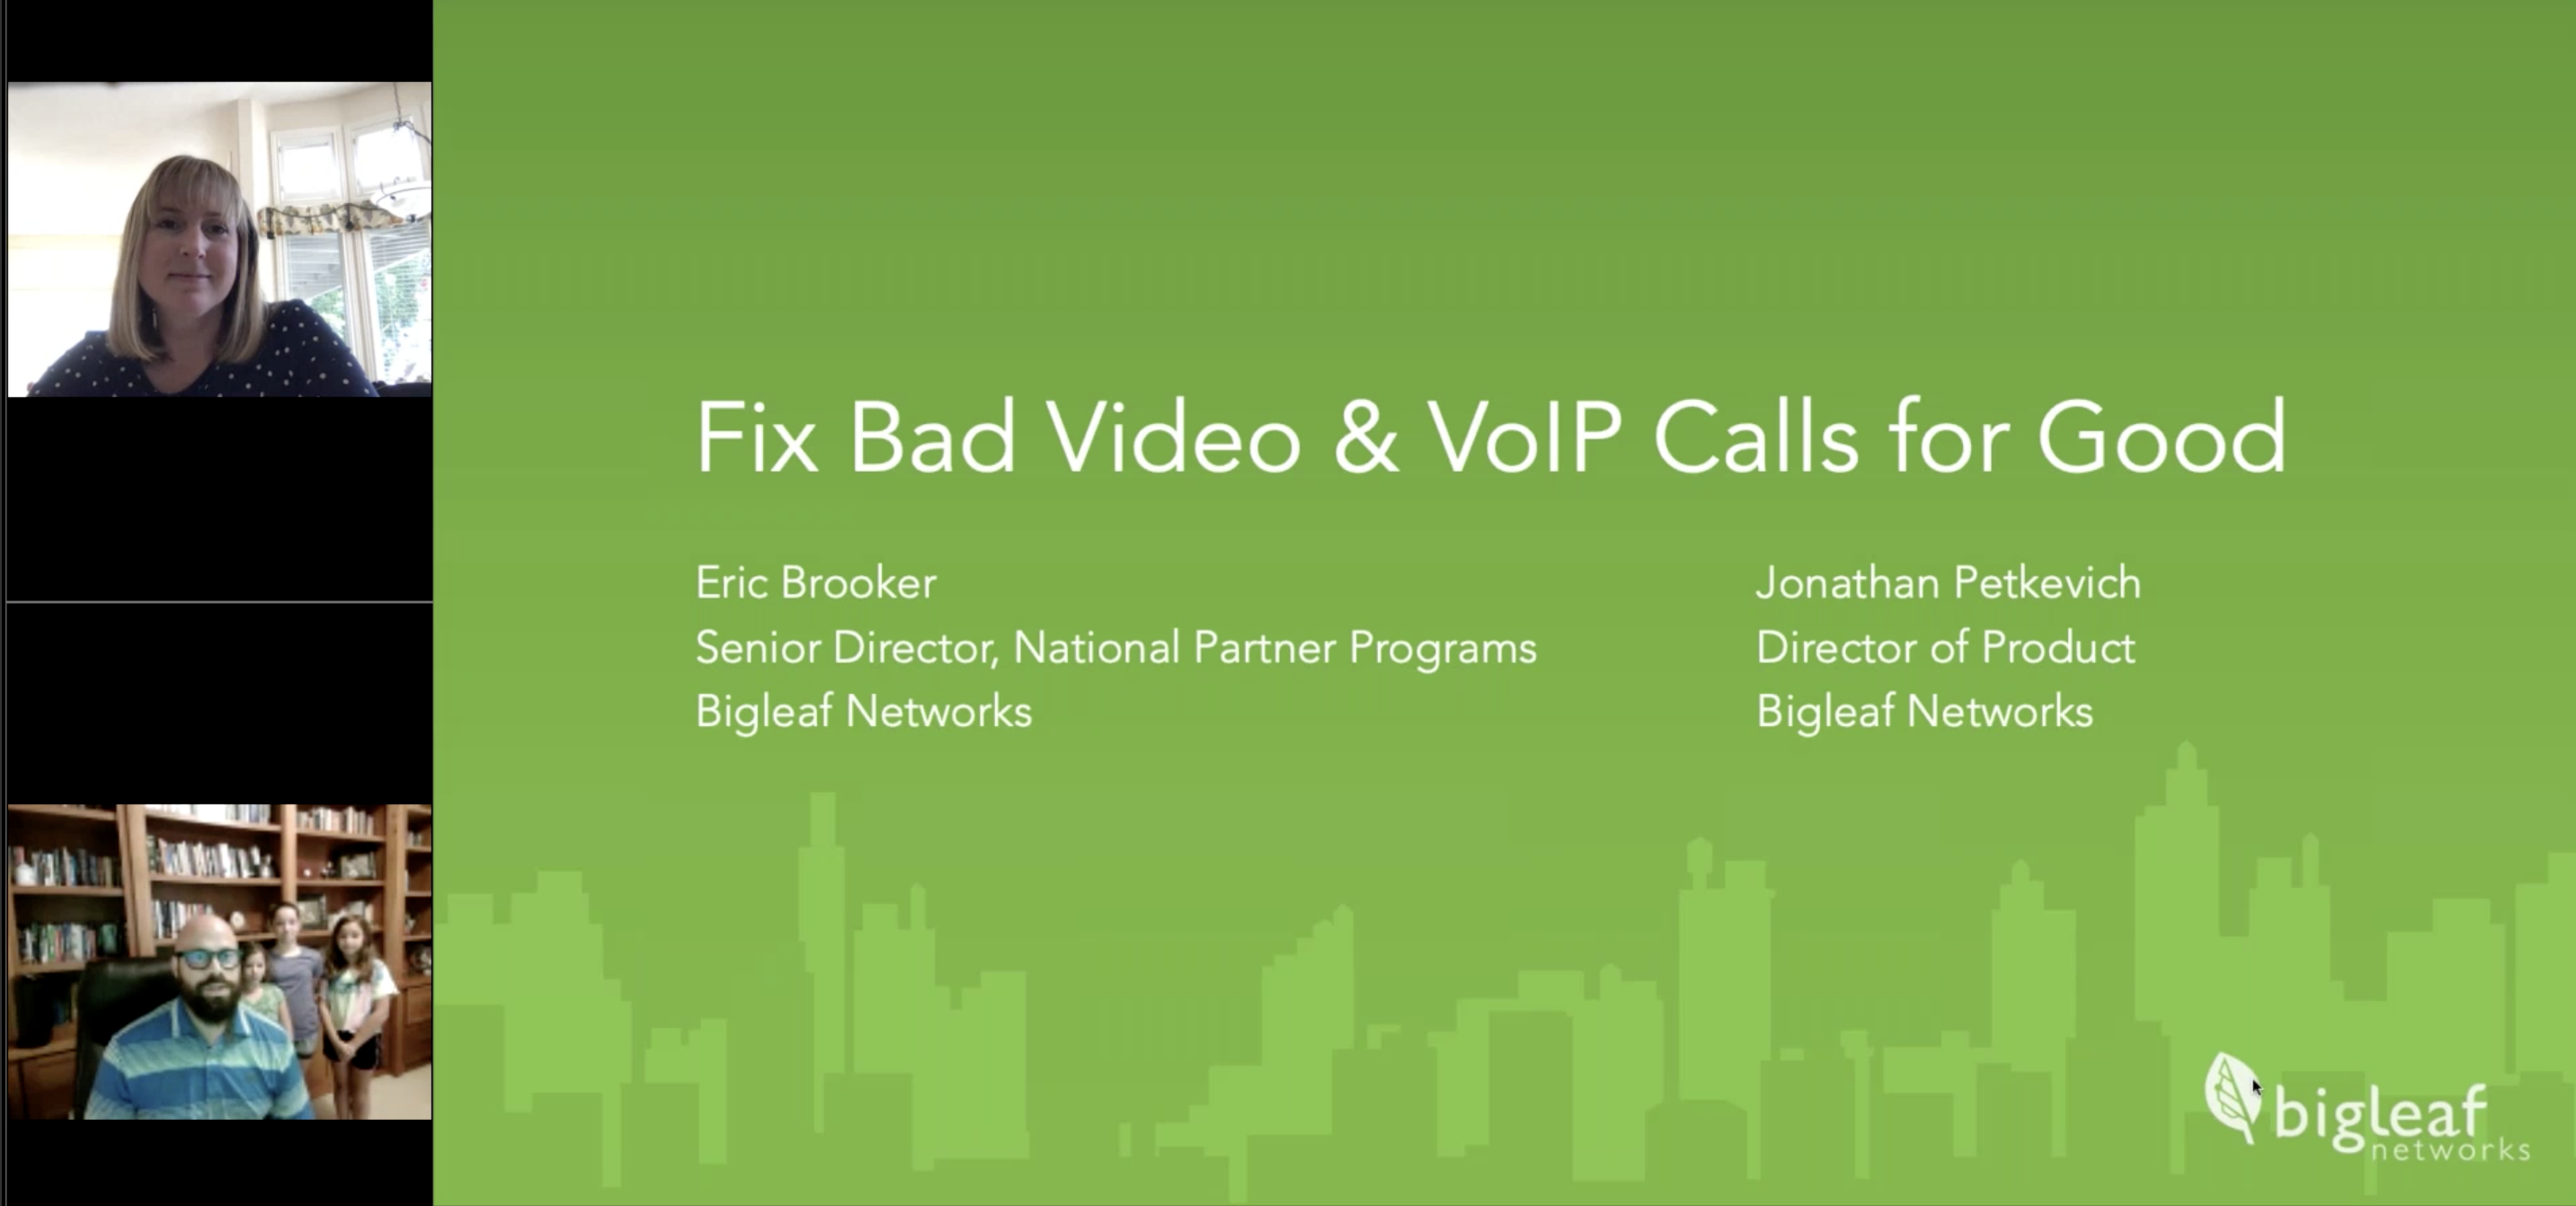 Fix Bad Video & VoIP Calls for Good